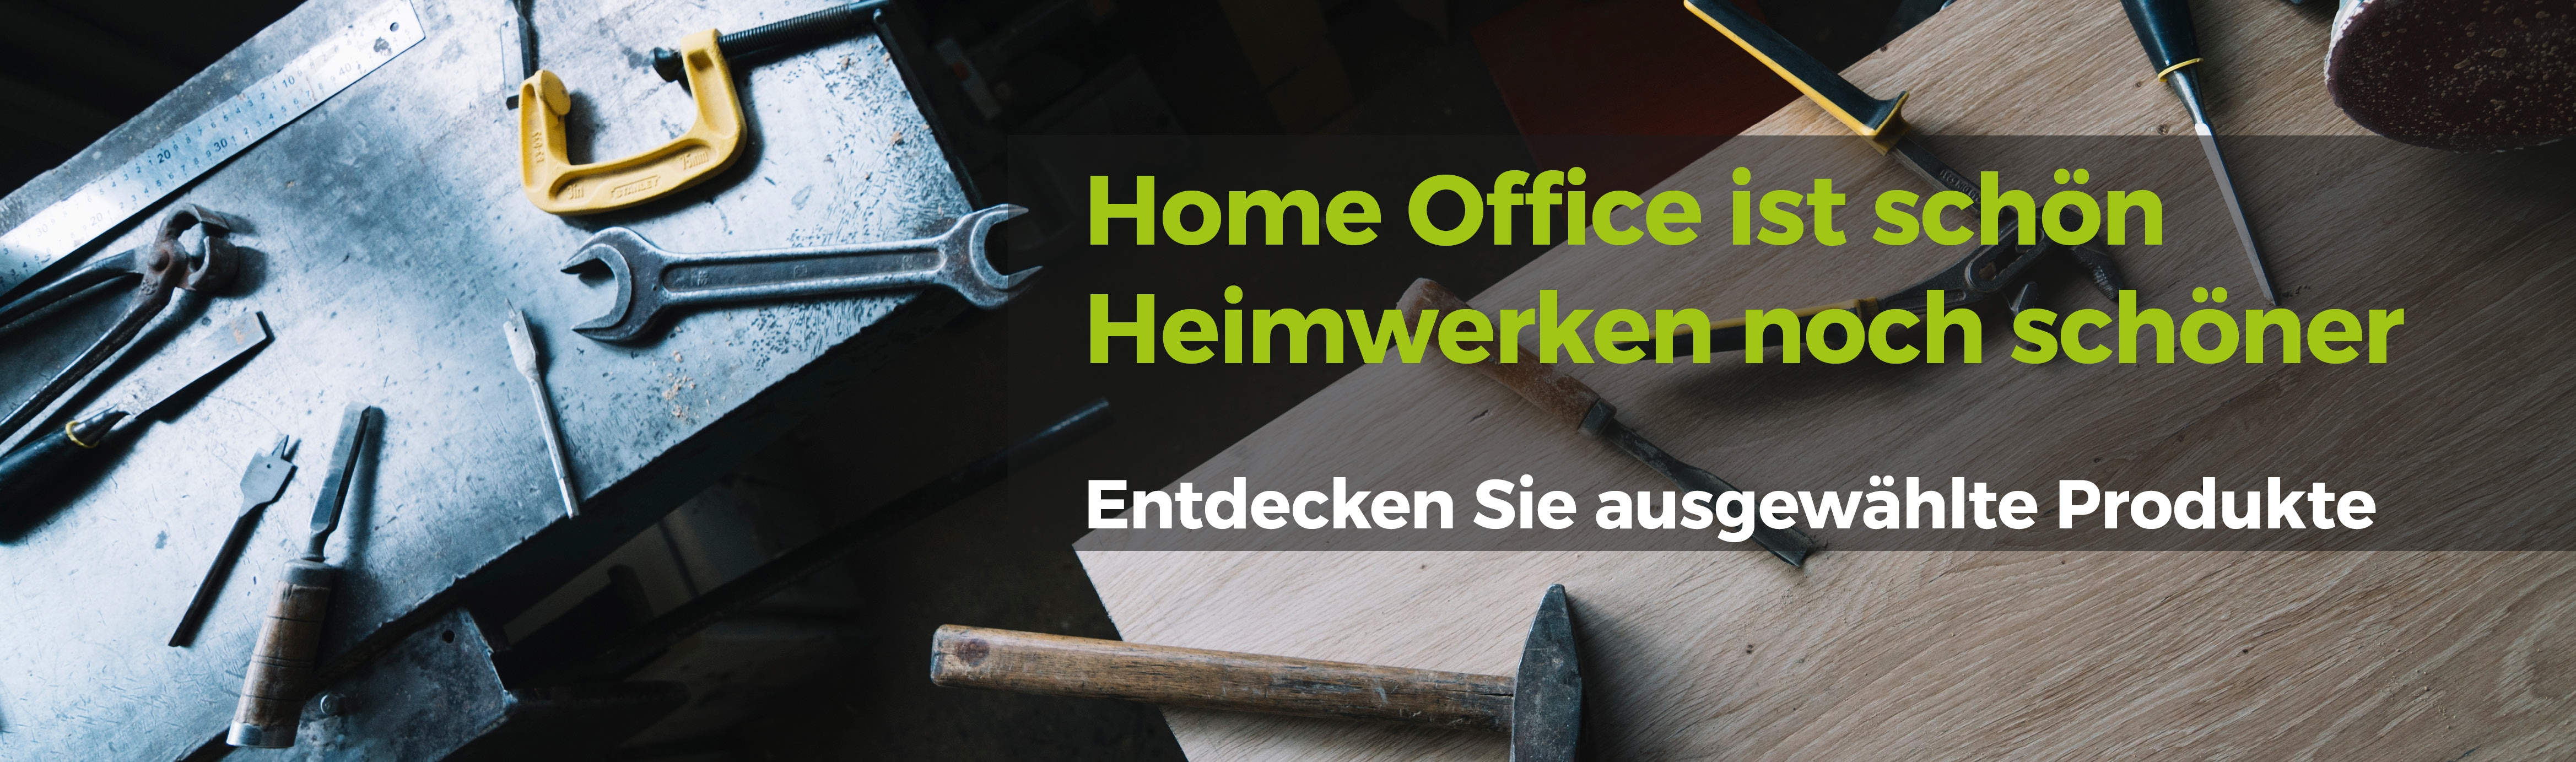 HEIMWERKEN - DO IT YOURSELF